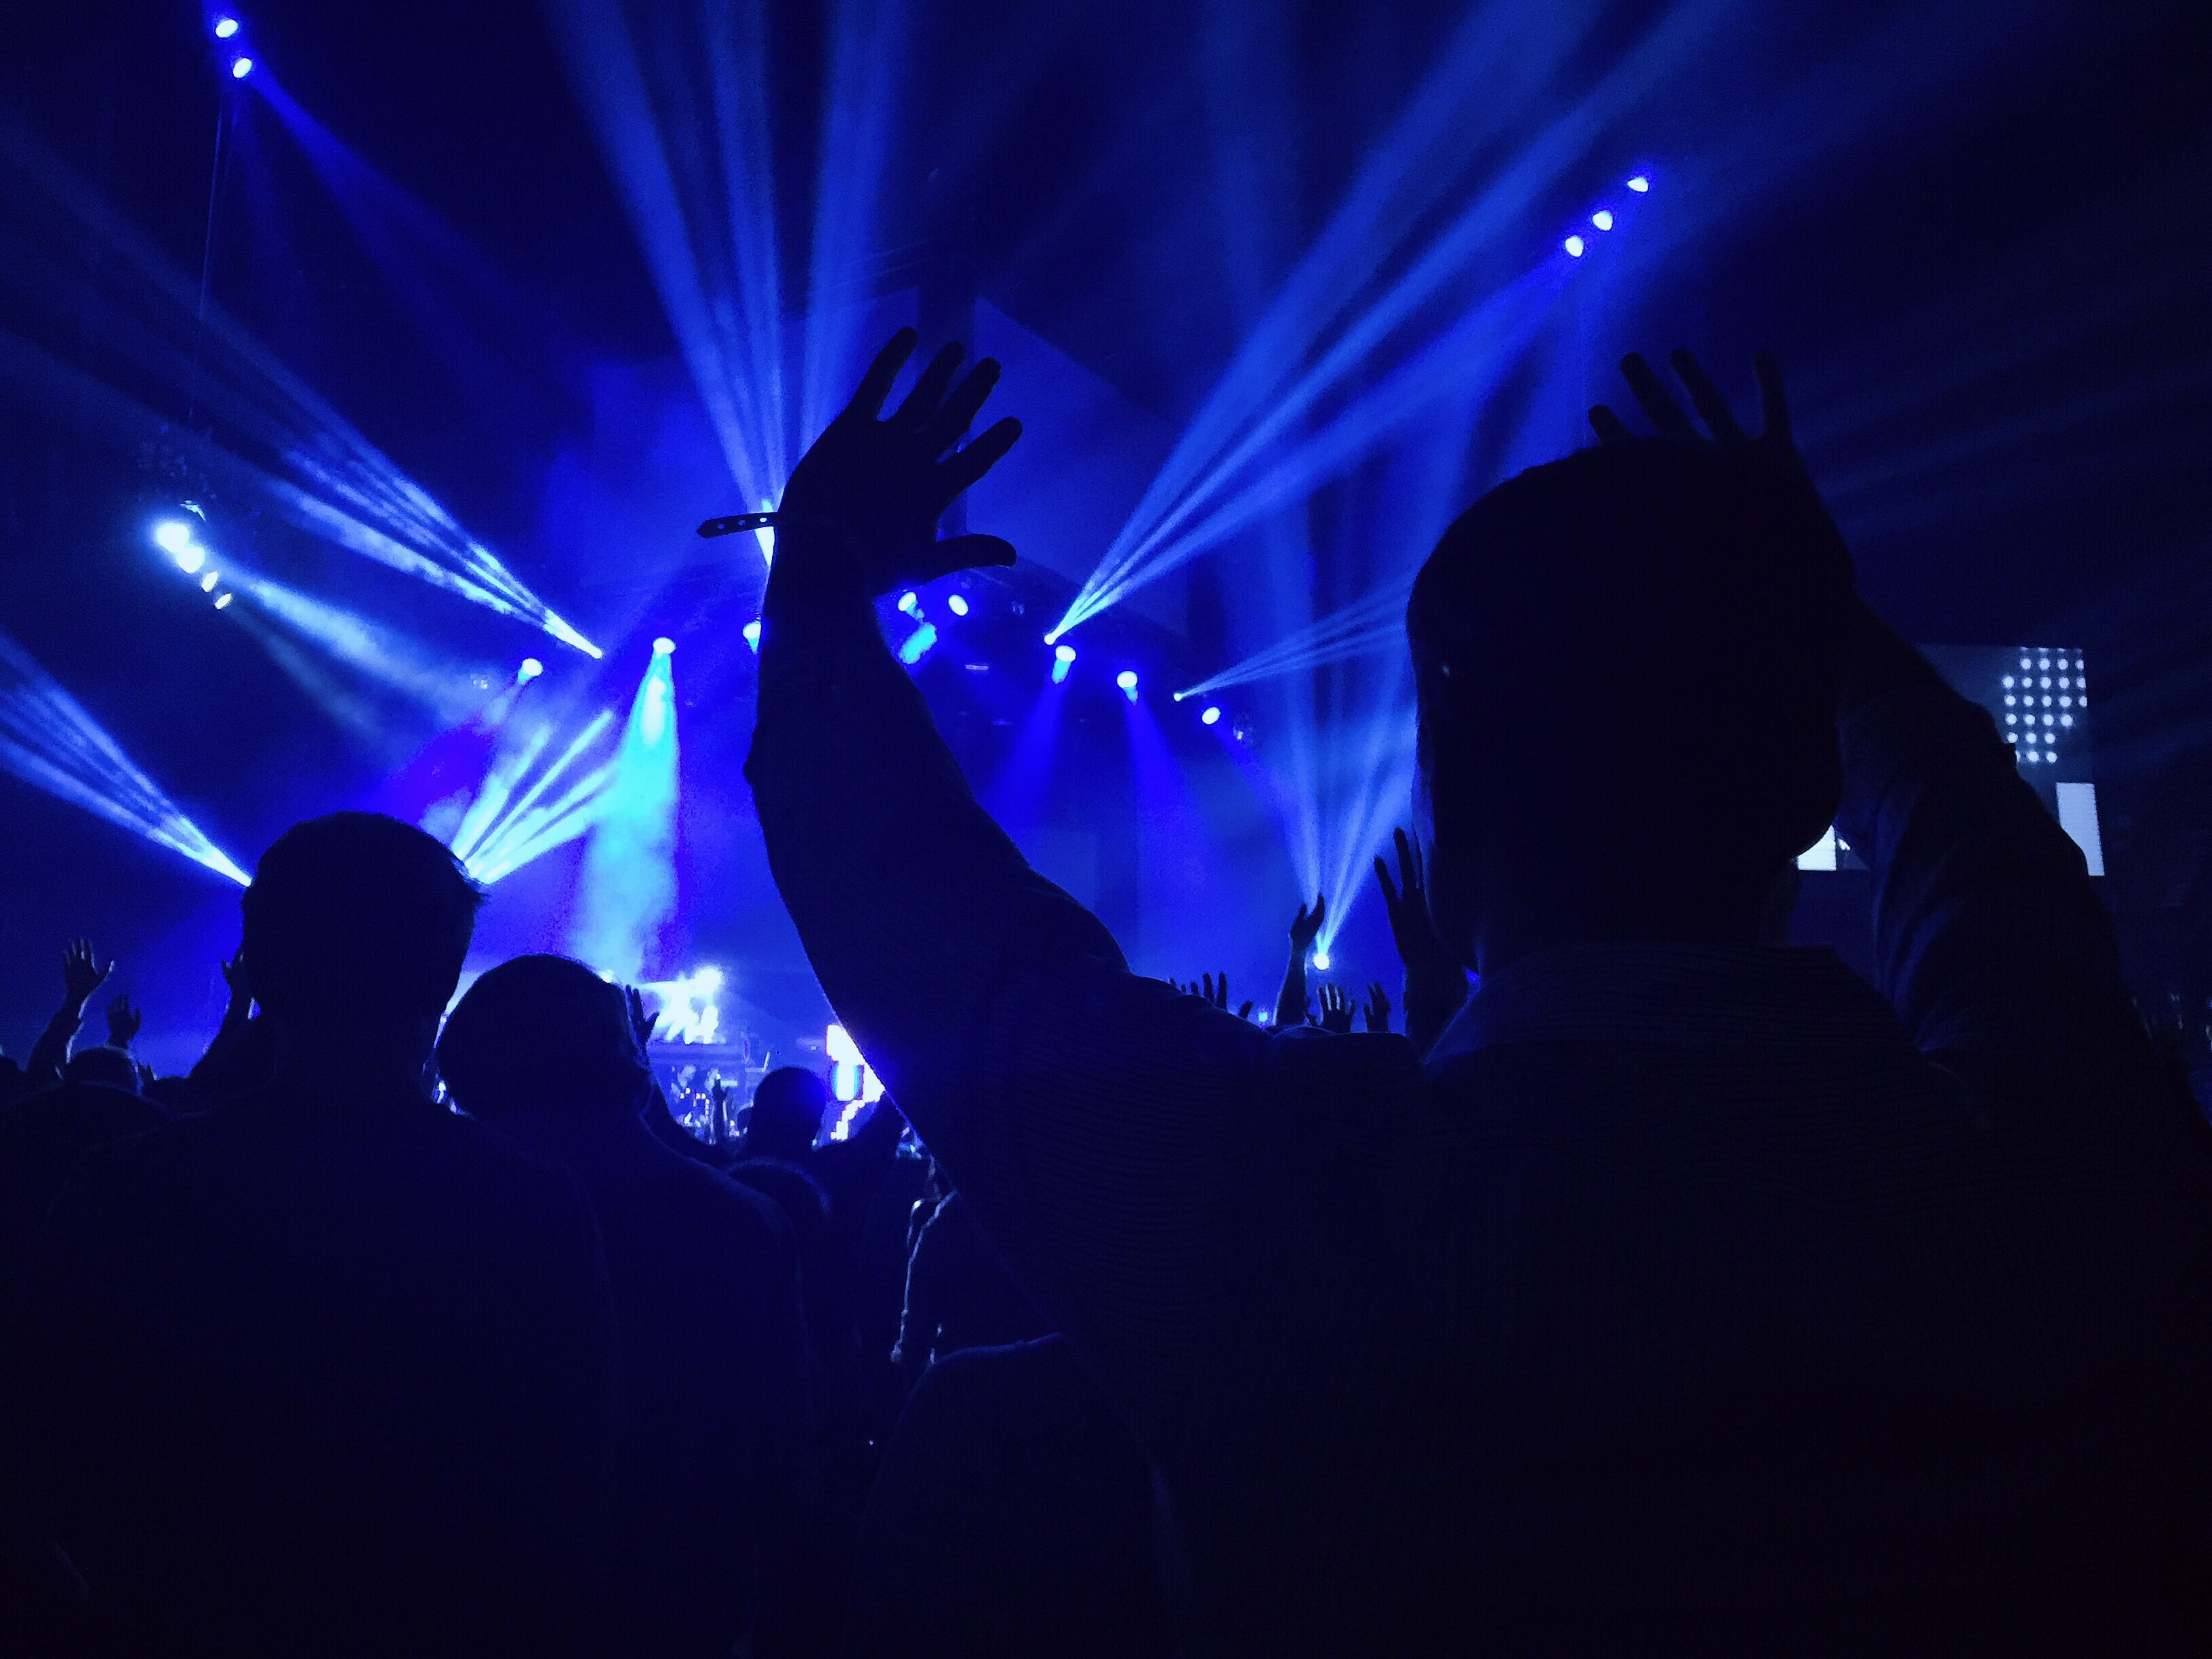 Audience members at a music concert.